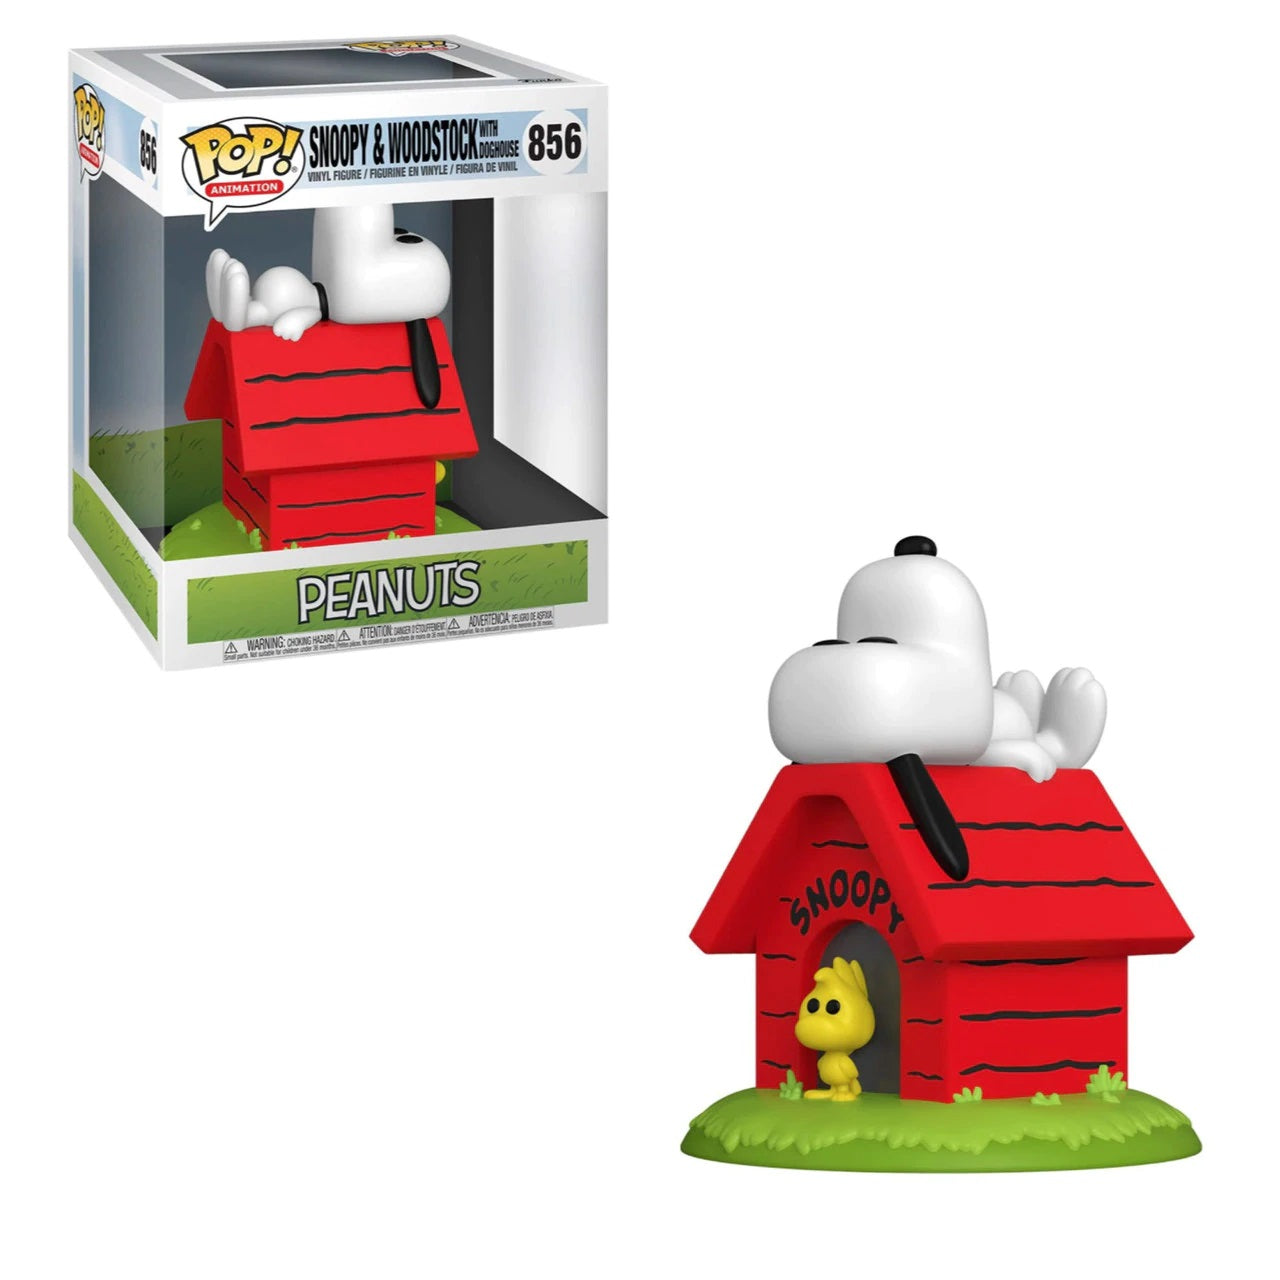 Peanuts Deluxe Pop! Vinyl Snoopy On Doghouse With Woodstock [856] - Fugitive Toys